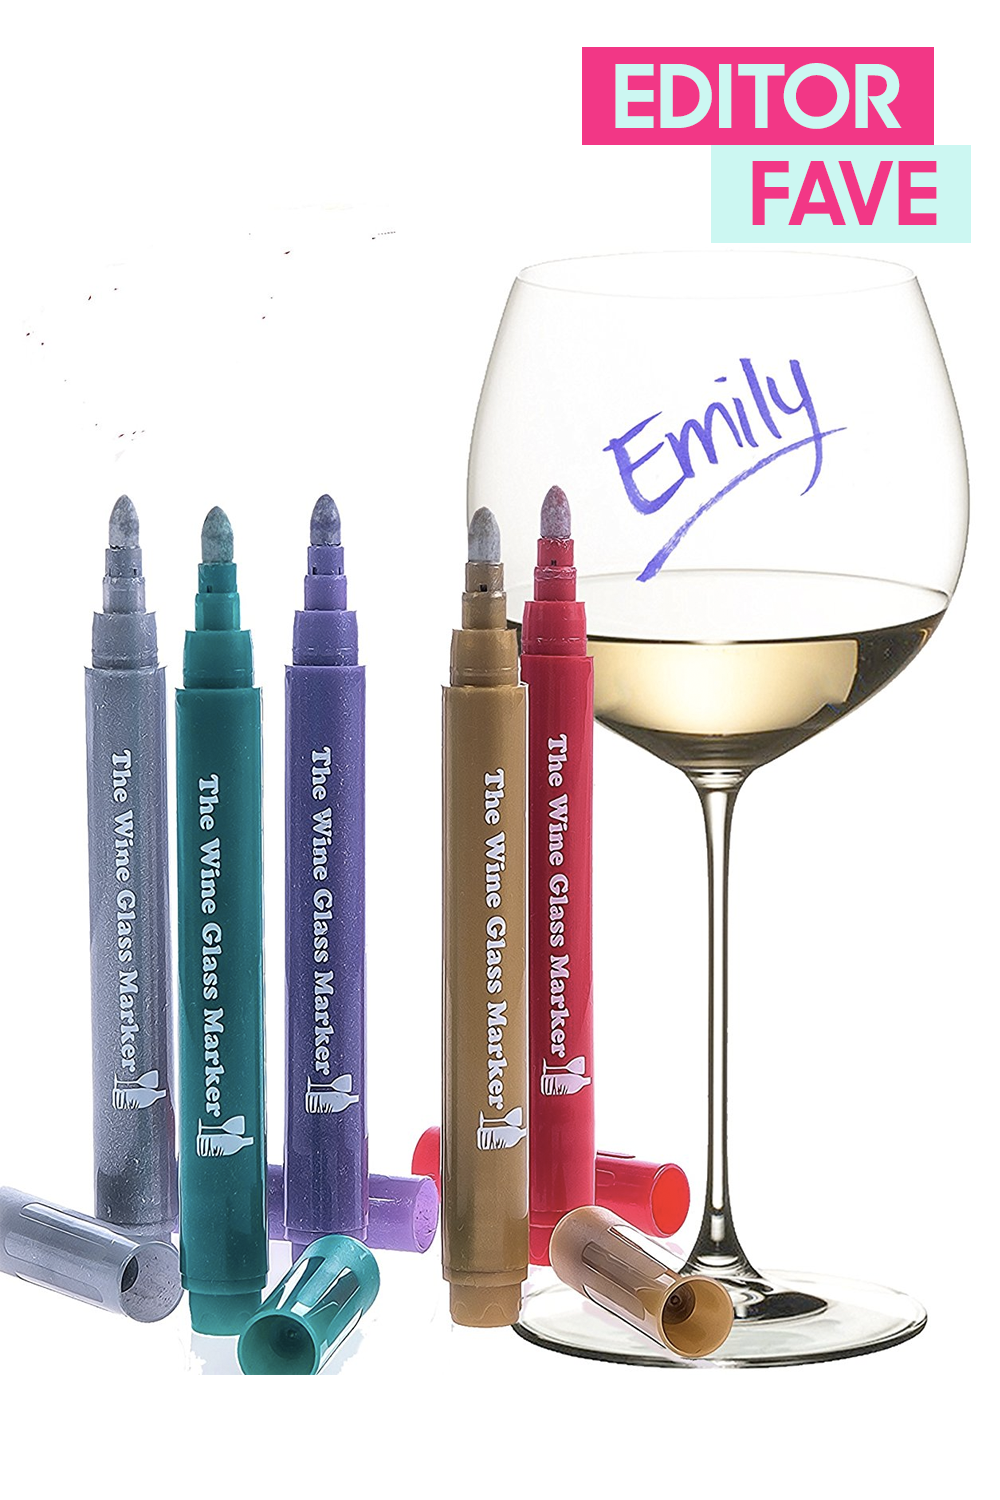 40 Funny Wine Lover Gifts